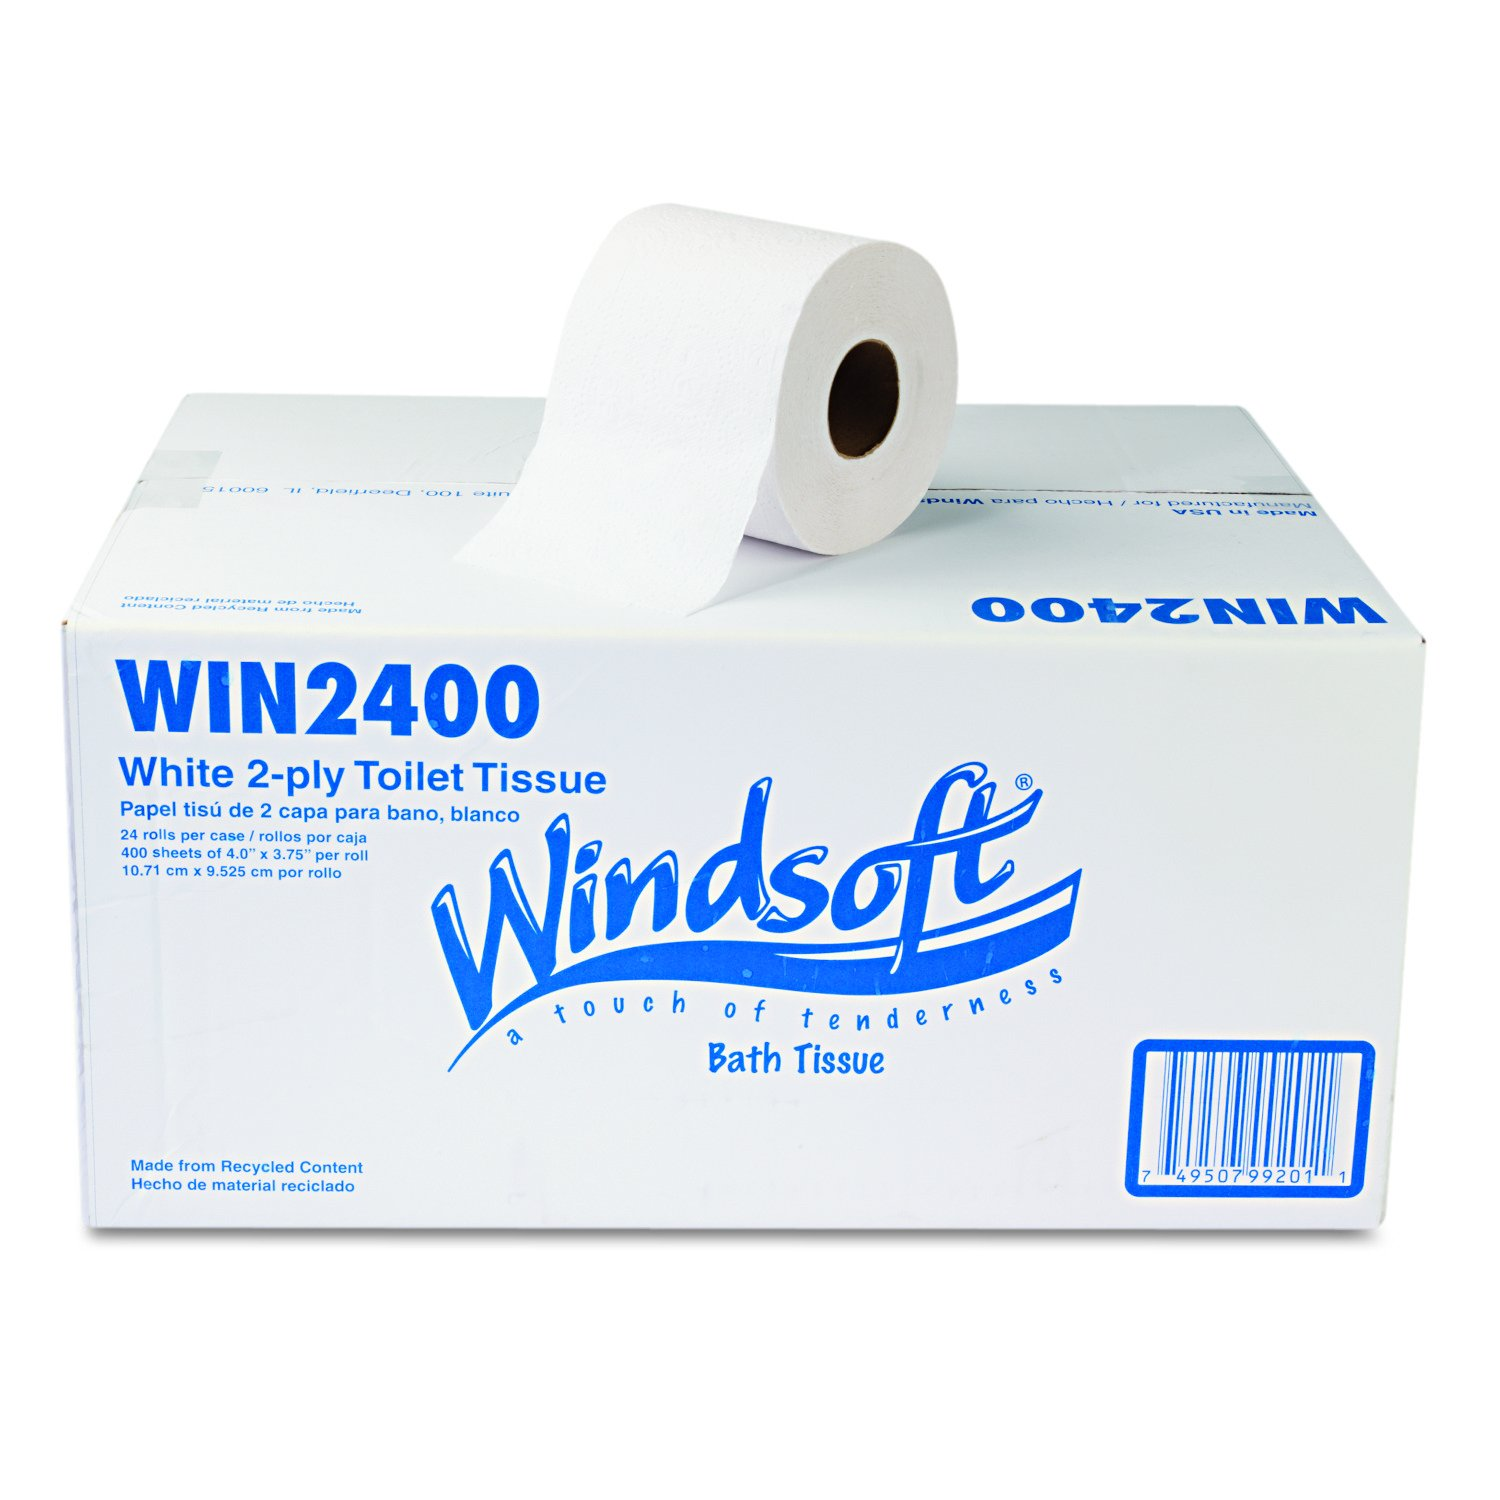 Amazon.com: Windsoft 2400 Single Roll Two Ply Premium Bath Tissue (Case of 24 Rolls) (2-(Case of 24 Rolls)): Kitchen & Dining